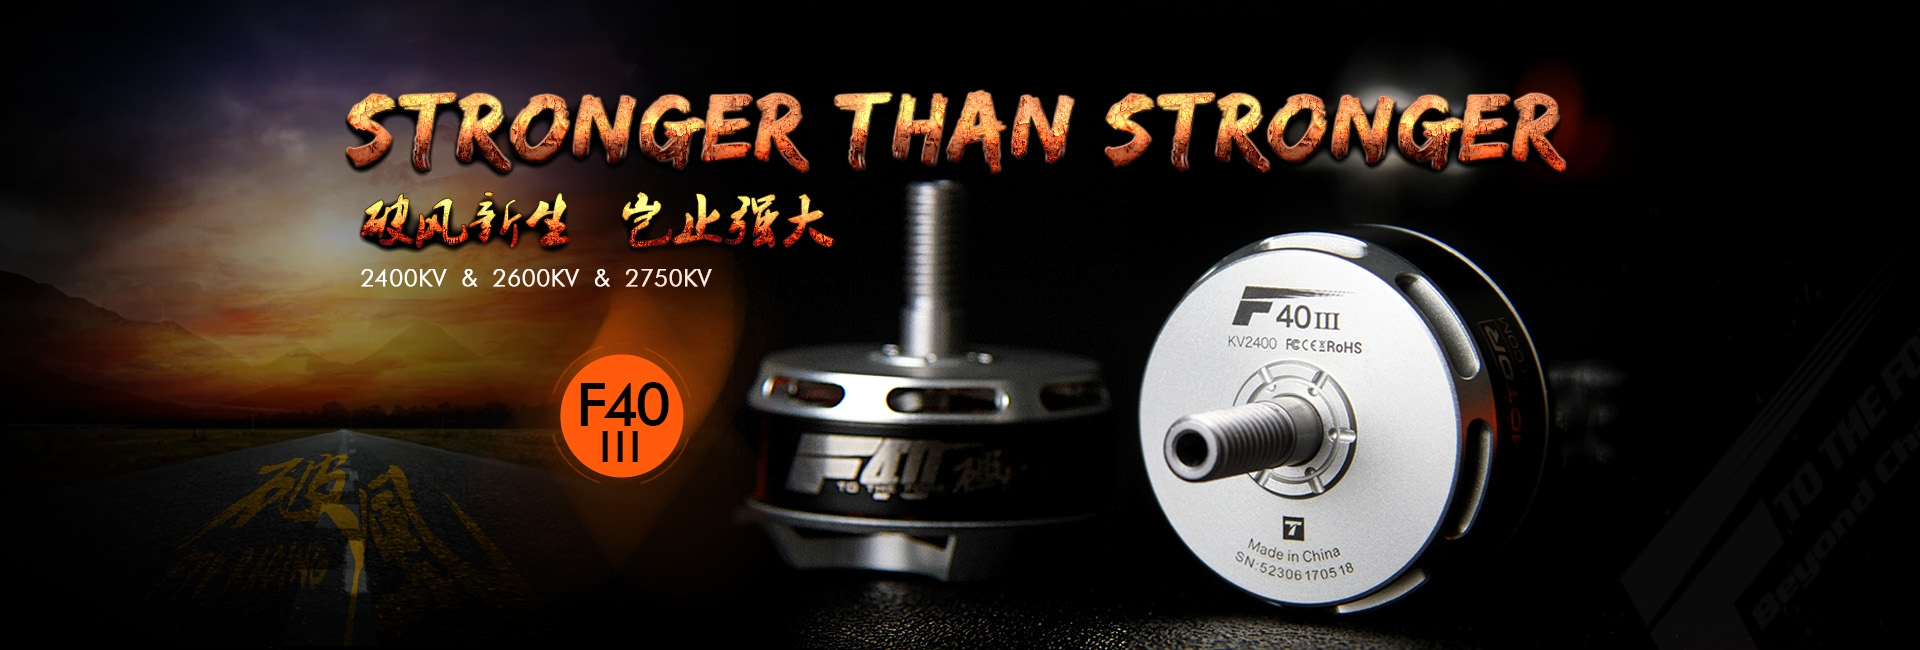 T-Motor F40 III 2306 2400KV 2600KV 2750KV Brushless Motor For 210 220 250 260 FPV Racing Frame